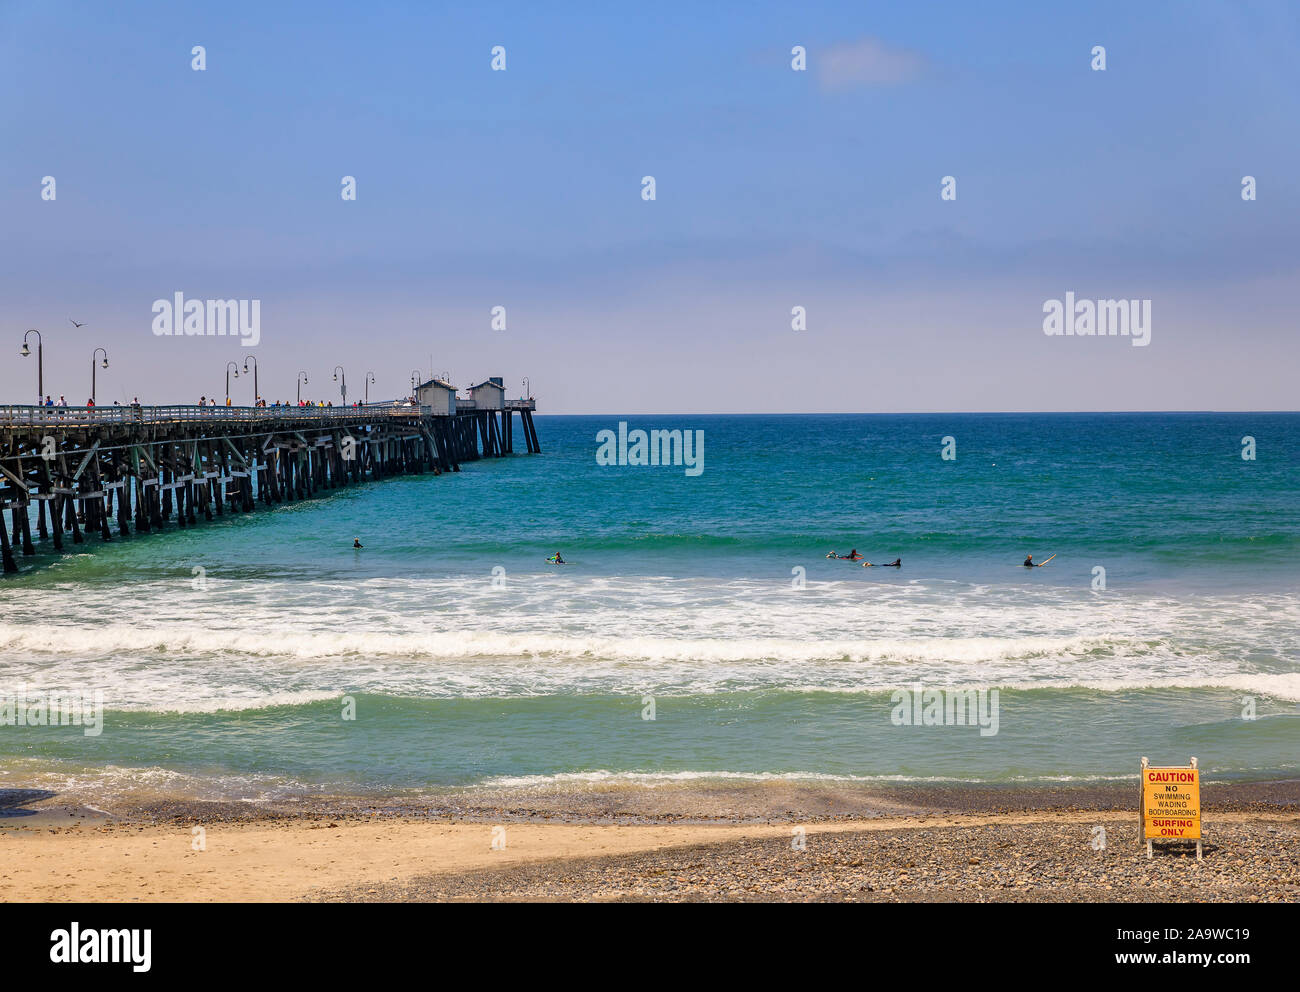 San Clemente, USA - July 03, 2017: Safety no surf warning sign on the beach in a famous California tourist destination with a pier in the background Stock Photo